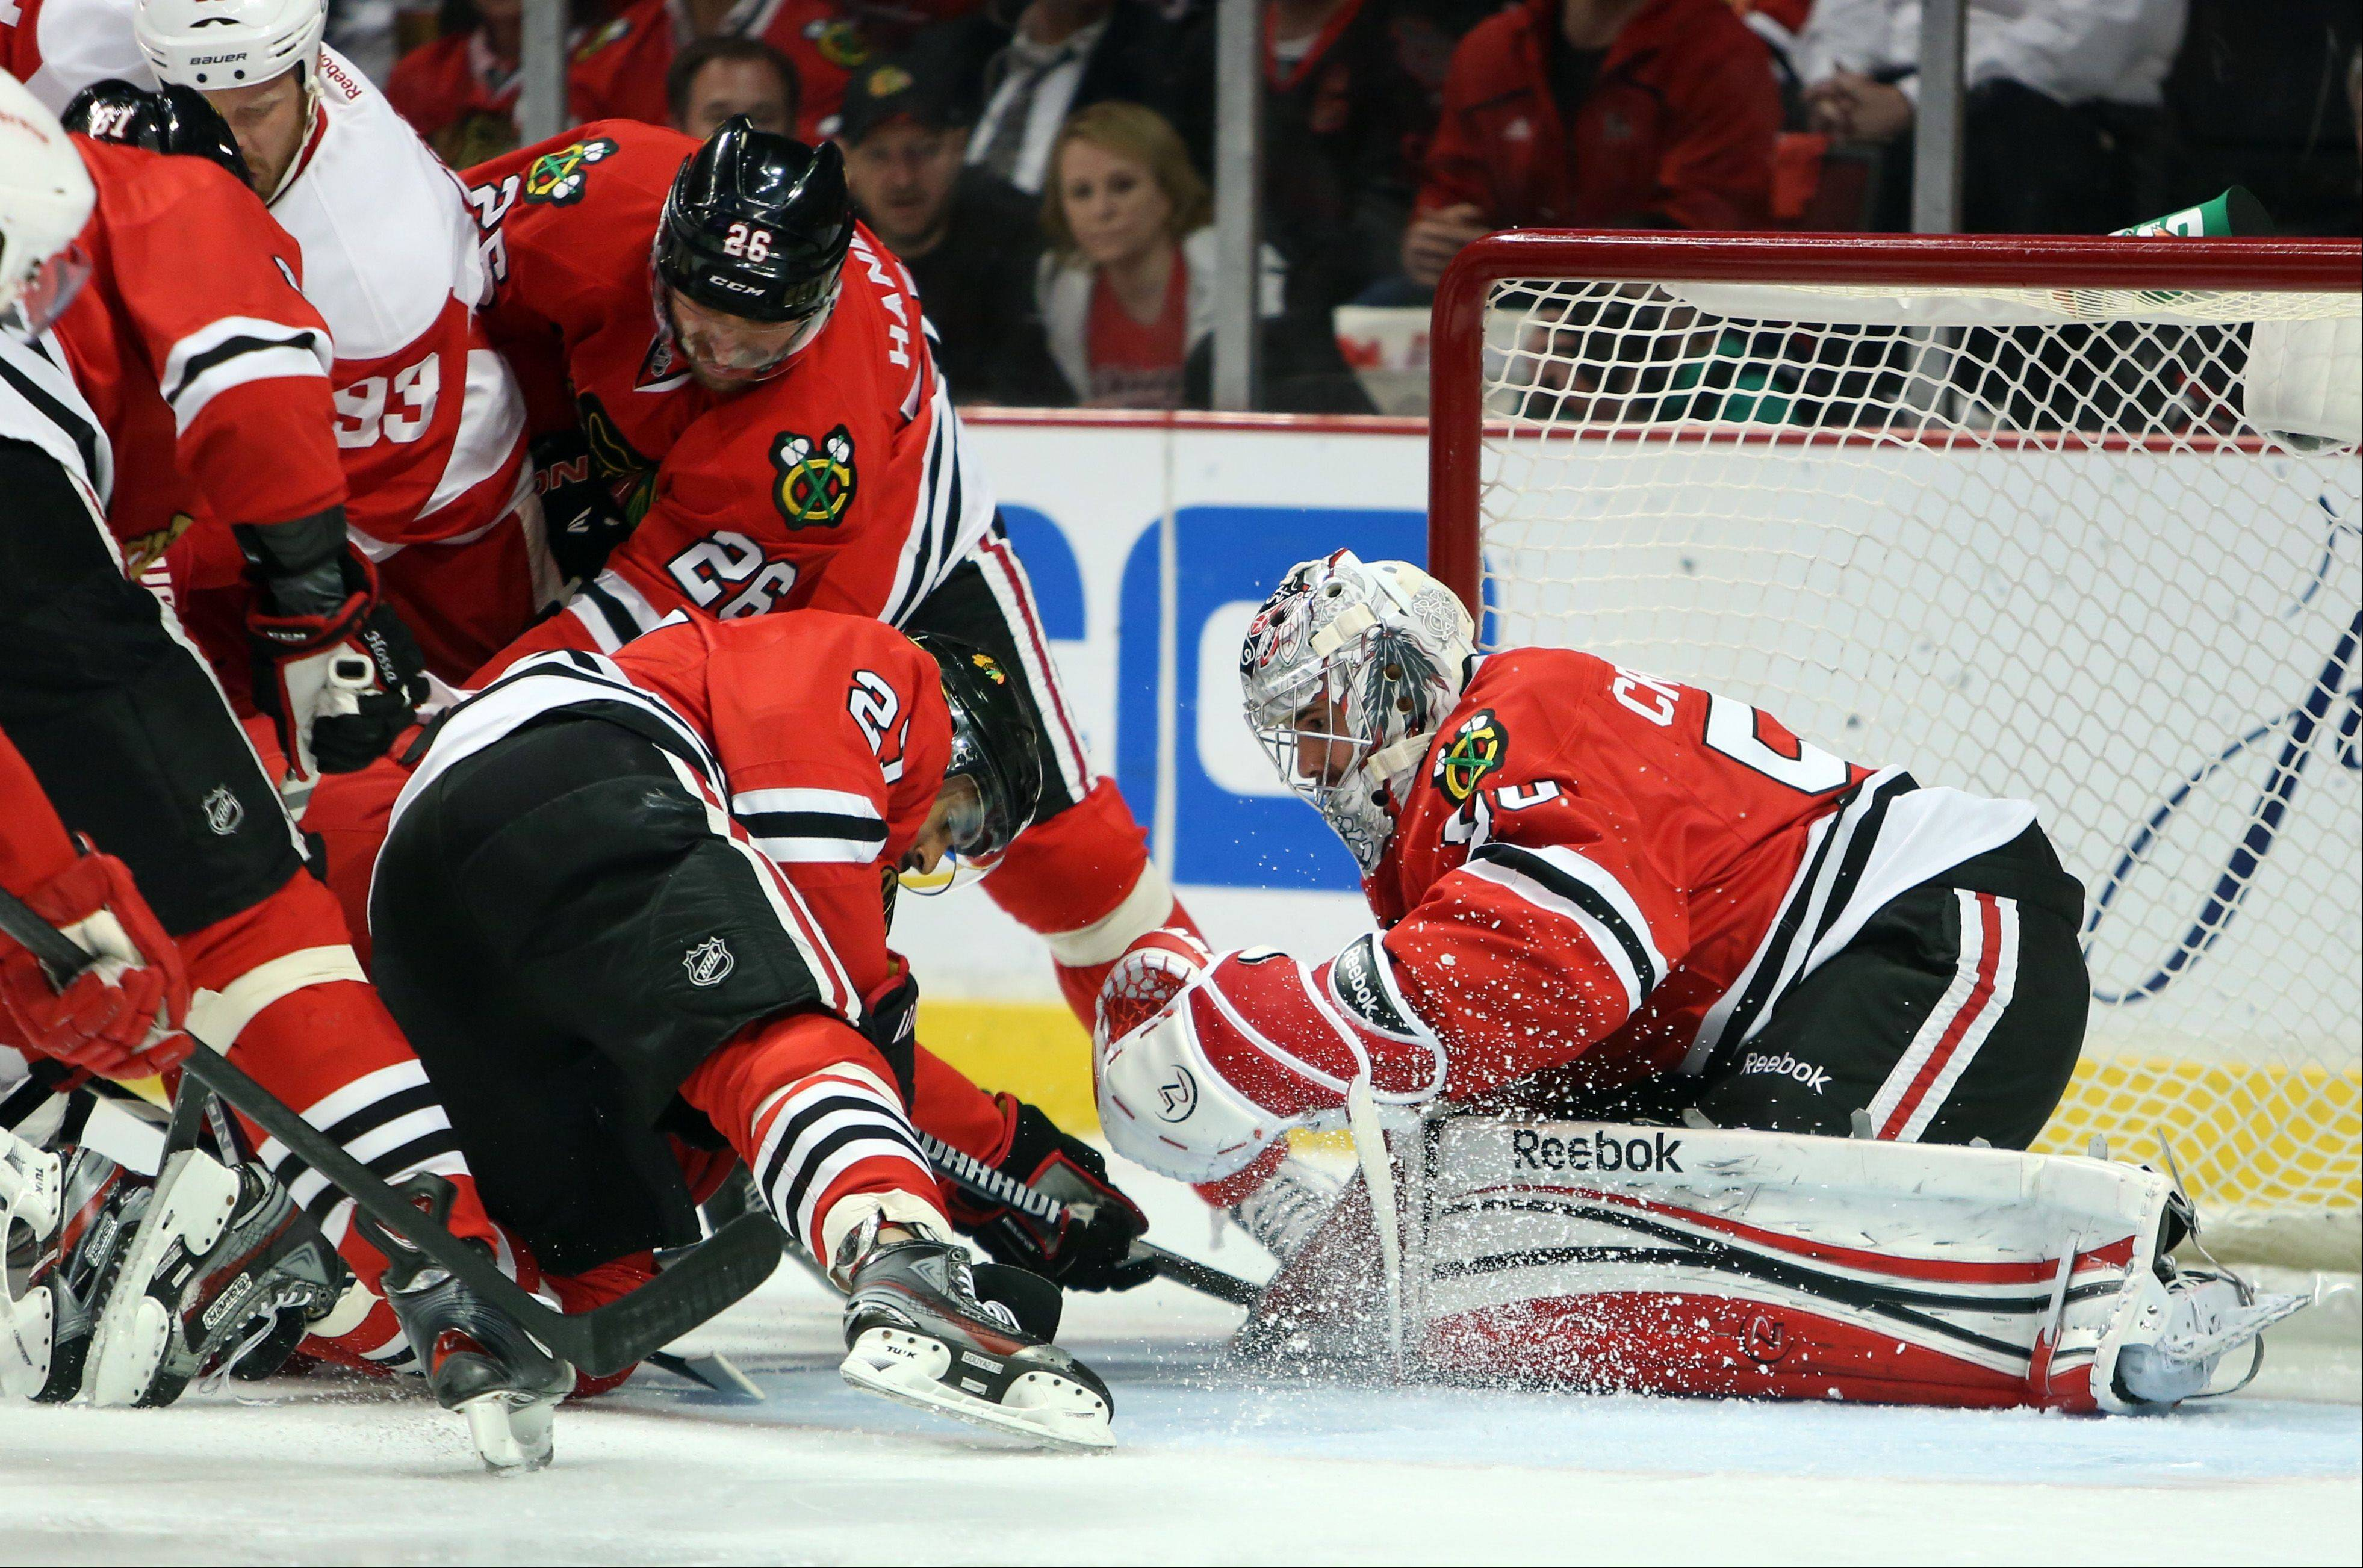 Blackhawks goalie Corey Crawford makes a save during game 7 of the Western Conference semifinals between the Chicago Blackhawks and the Detroit Red Wings on Wednesday, May 29, at the United Center in Chicago.